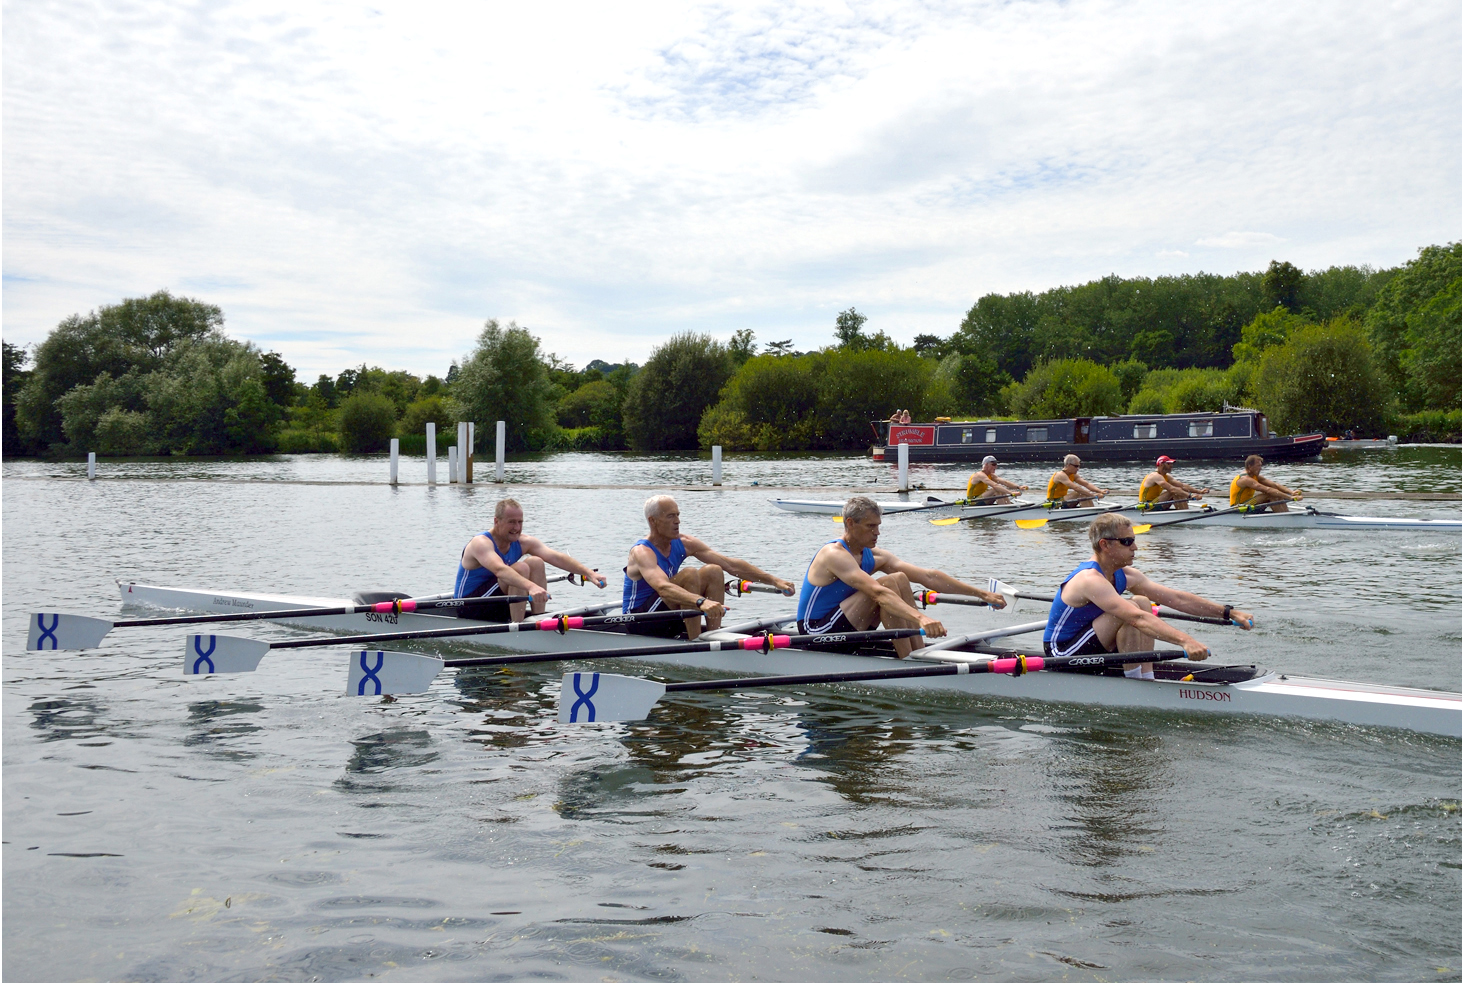 MASTERS SQUAD - The Masters group is one of our strongest rowing groups, made up of exerienced and well decorated rowers that manage their own training and rowing commitments outside of 'squad life'. Extremely active, our Masters train up to four times a week on week days and up to twice at the weekend. They compete in the majority of local head races and regattas bringing home medals and pots in all boat categories from eights to singles.Both our Men and Women's Masters crews are friendly, welcoming and love a post-row brunch at the weekend.